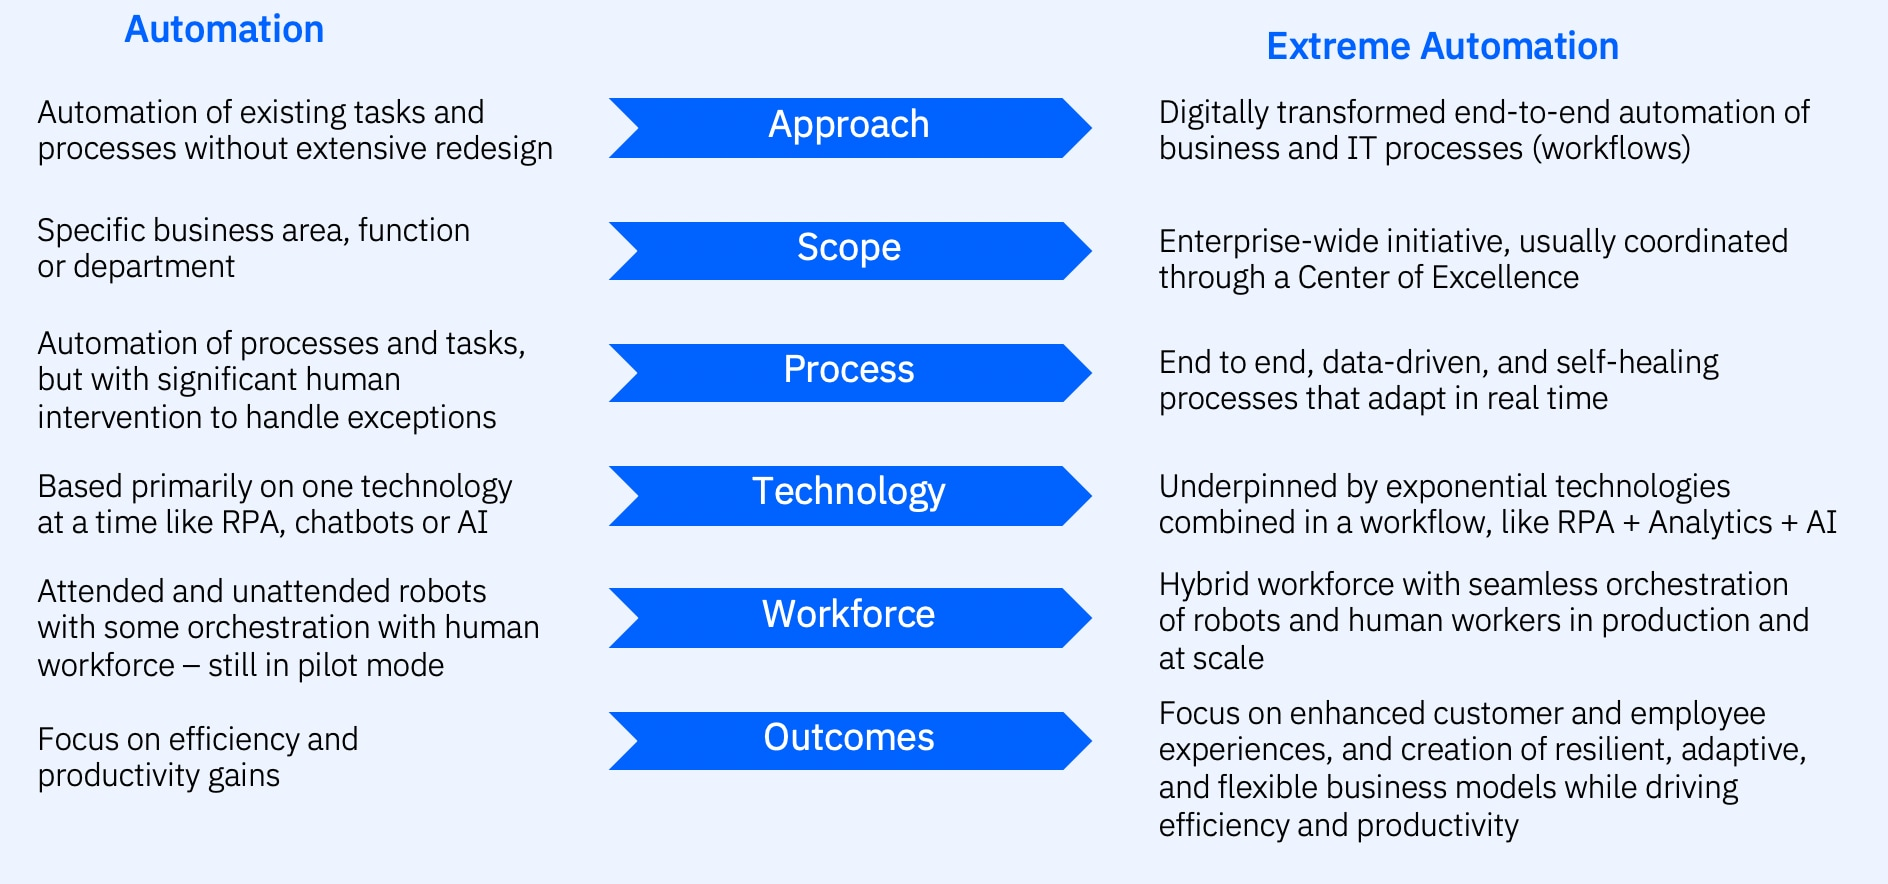 The image below compares traditional and extreme automation: